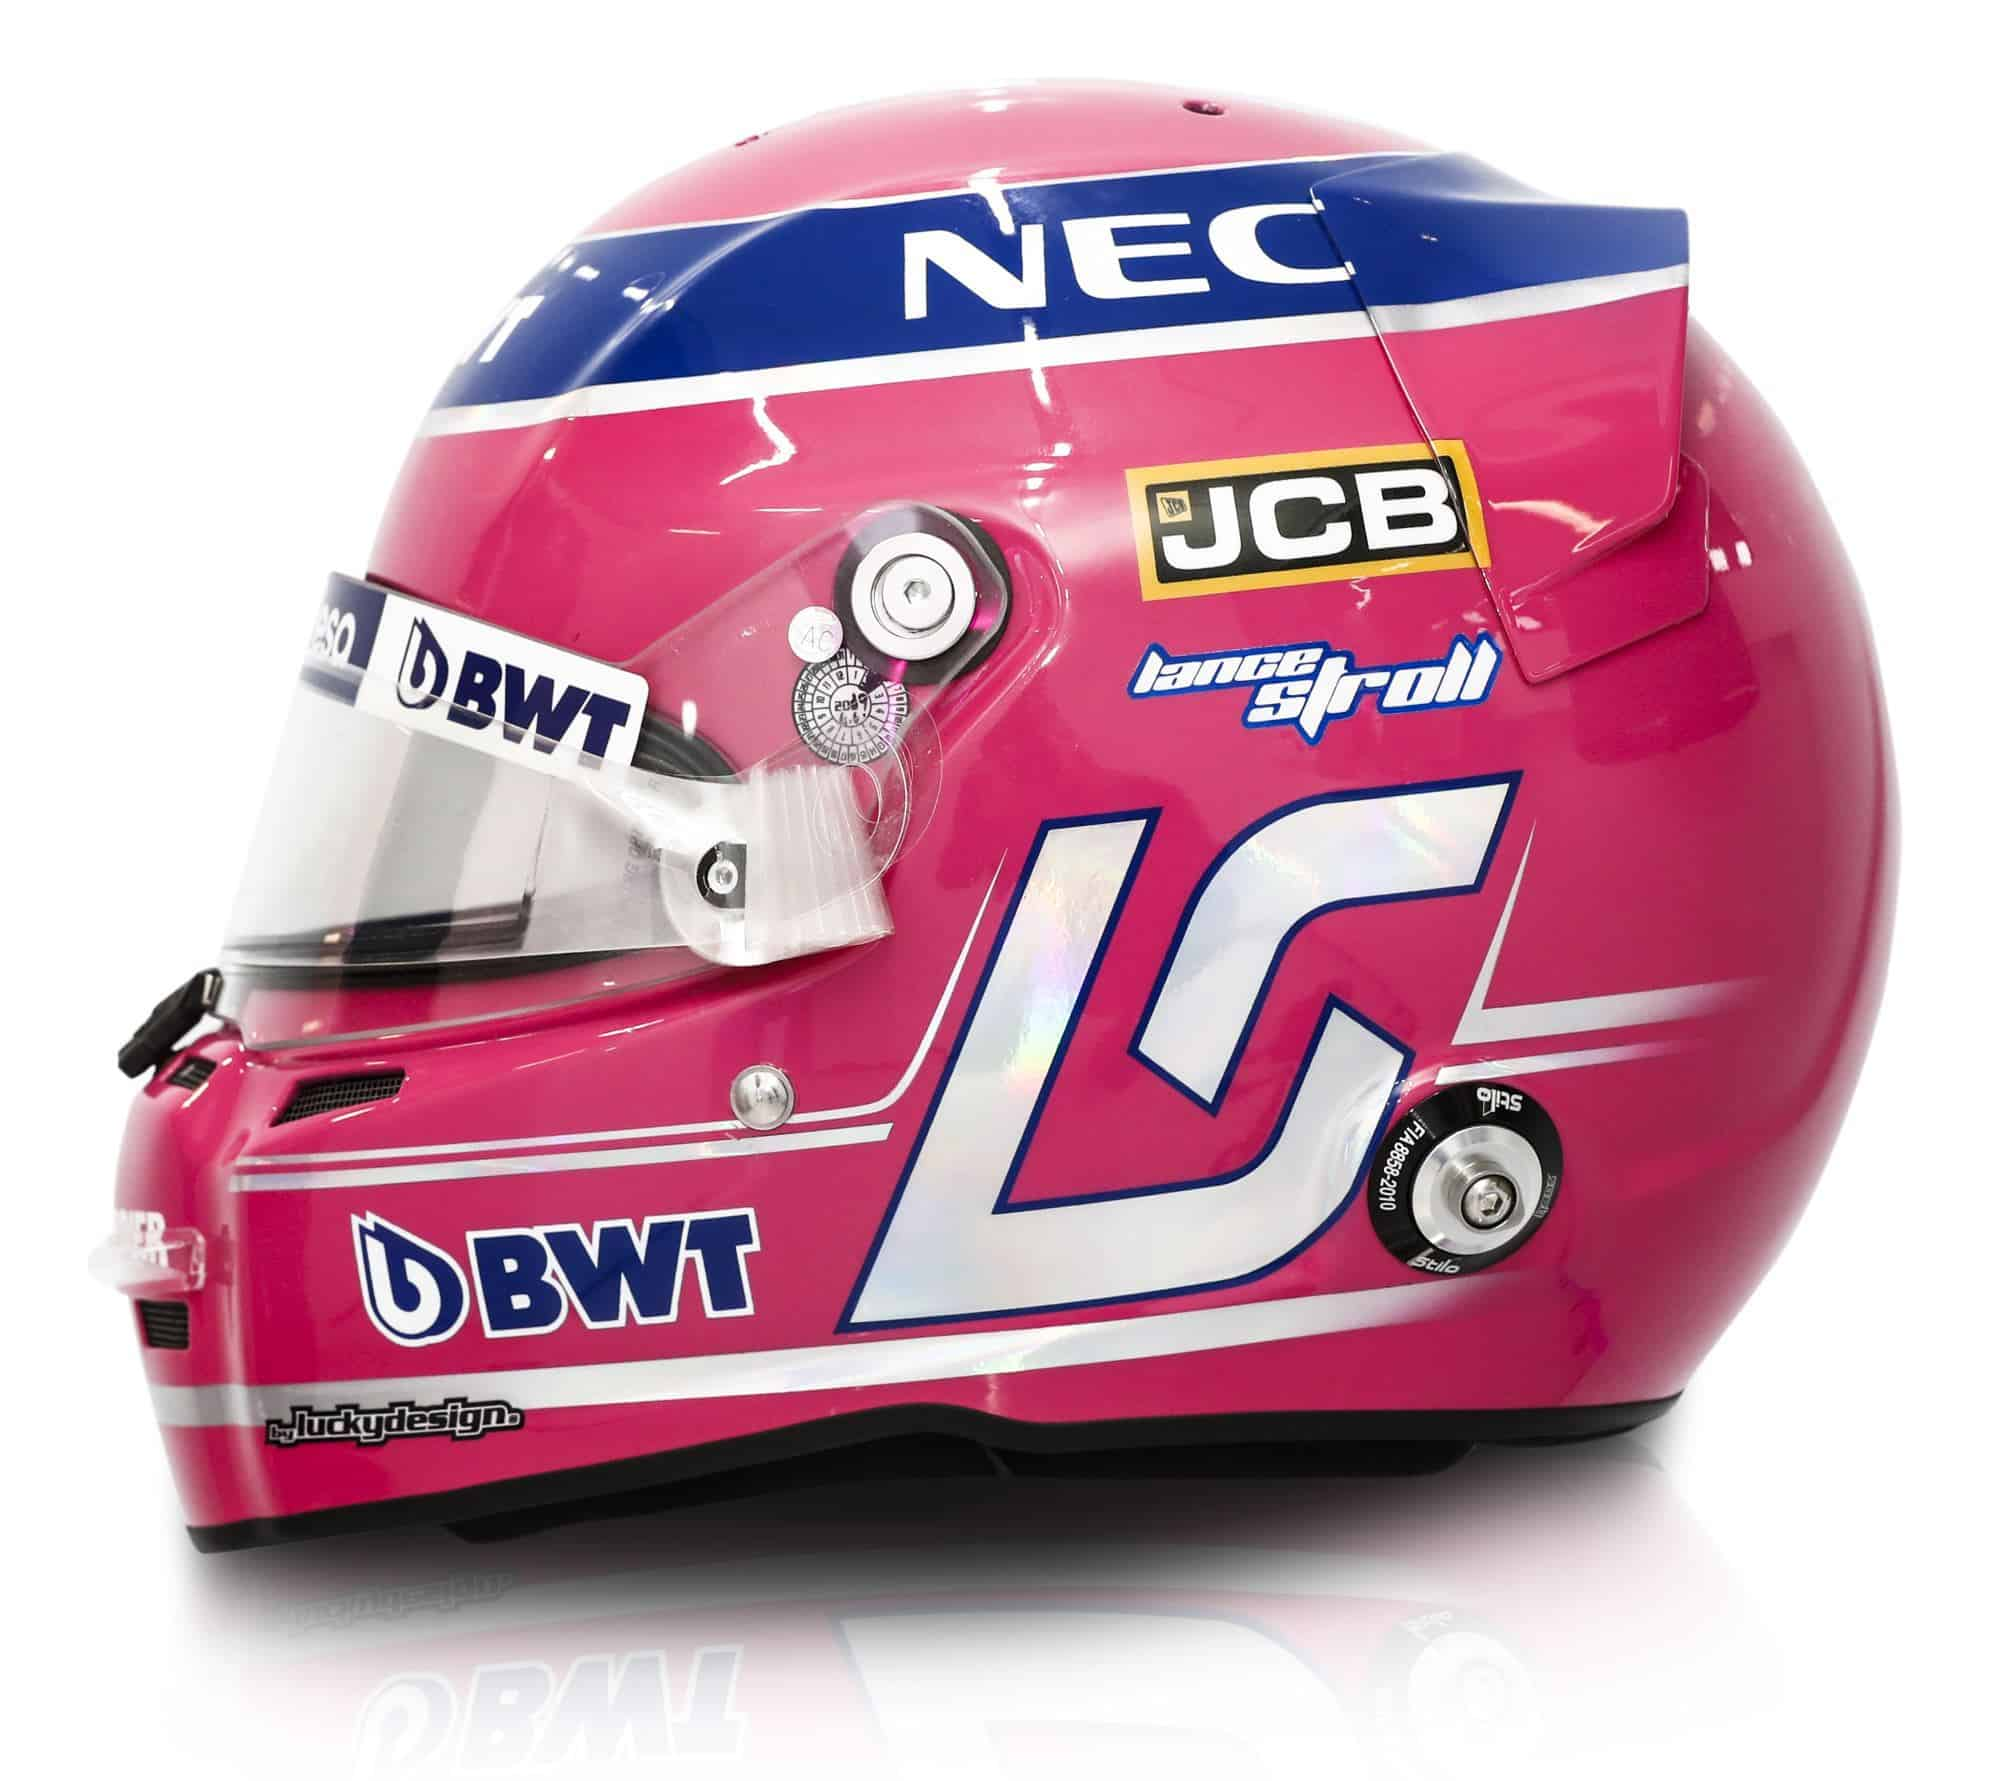 2019 Sport Pesa Racing Point Lance Stroll helmet left side Photo Racing Point Edited by MAXF1net